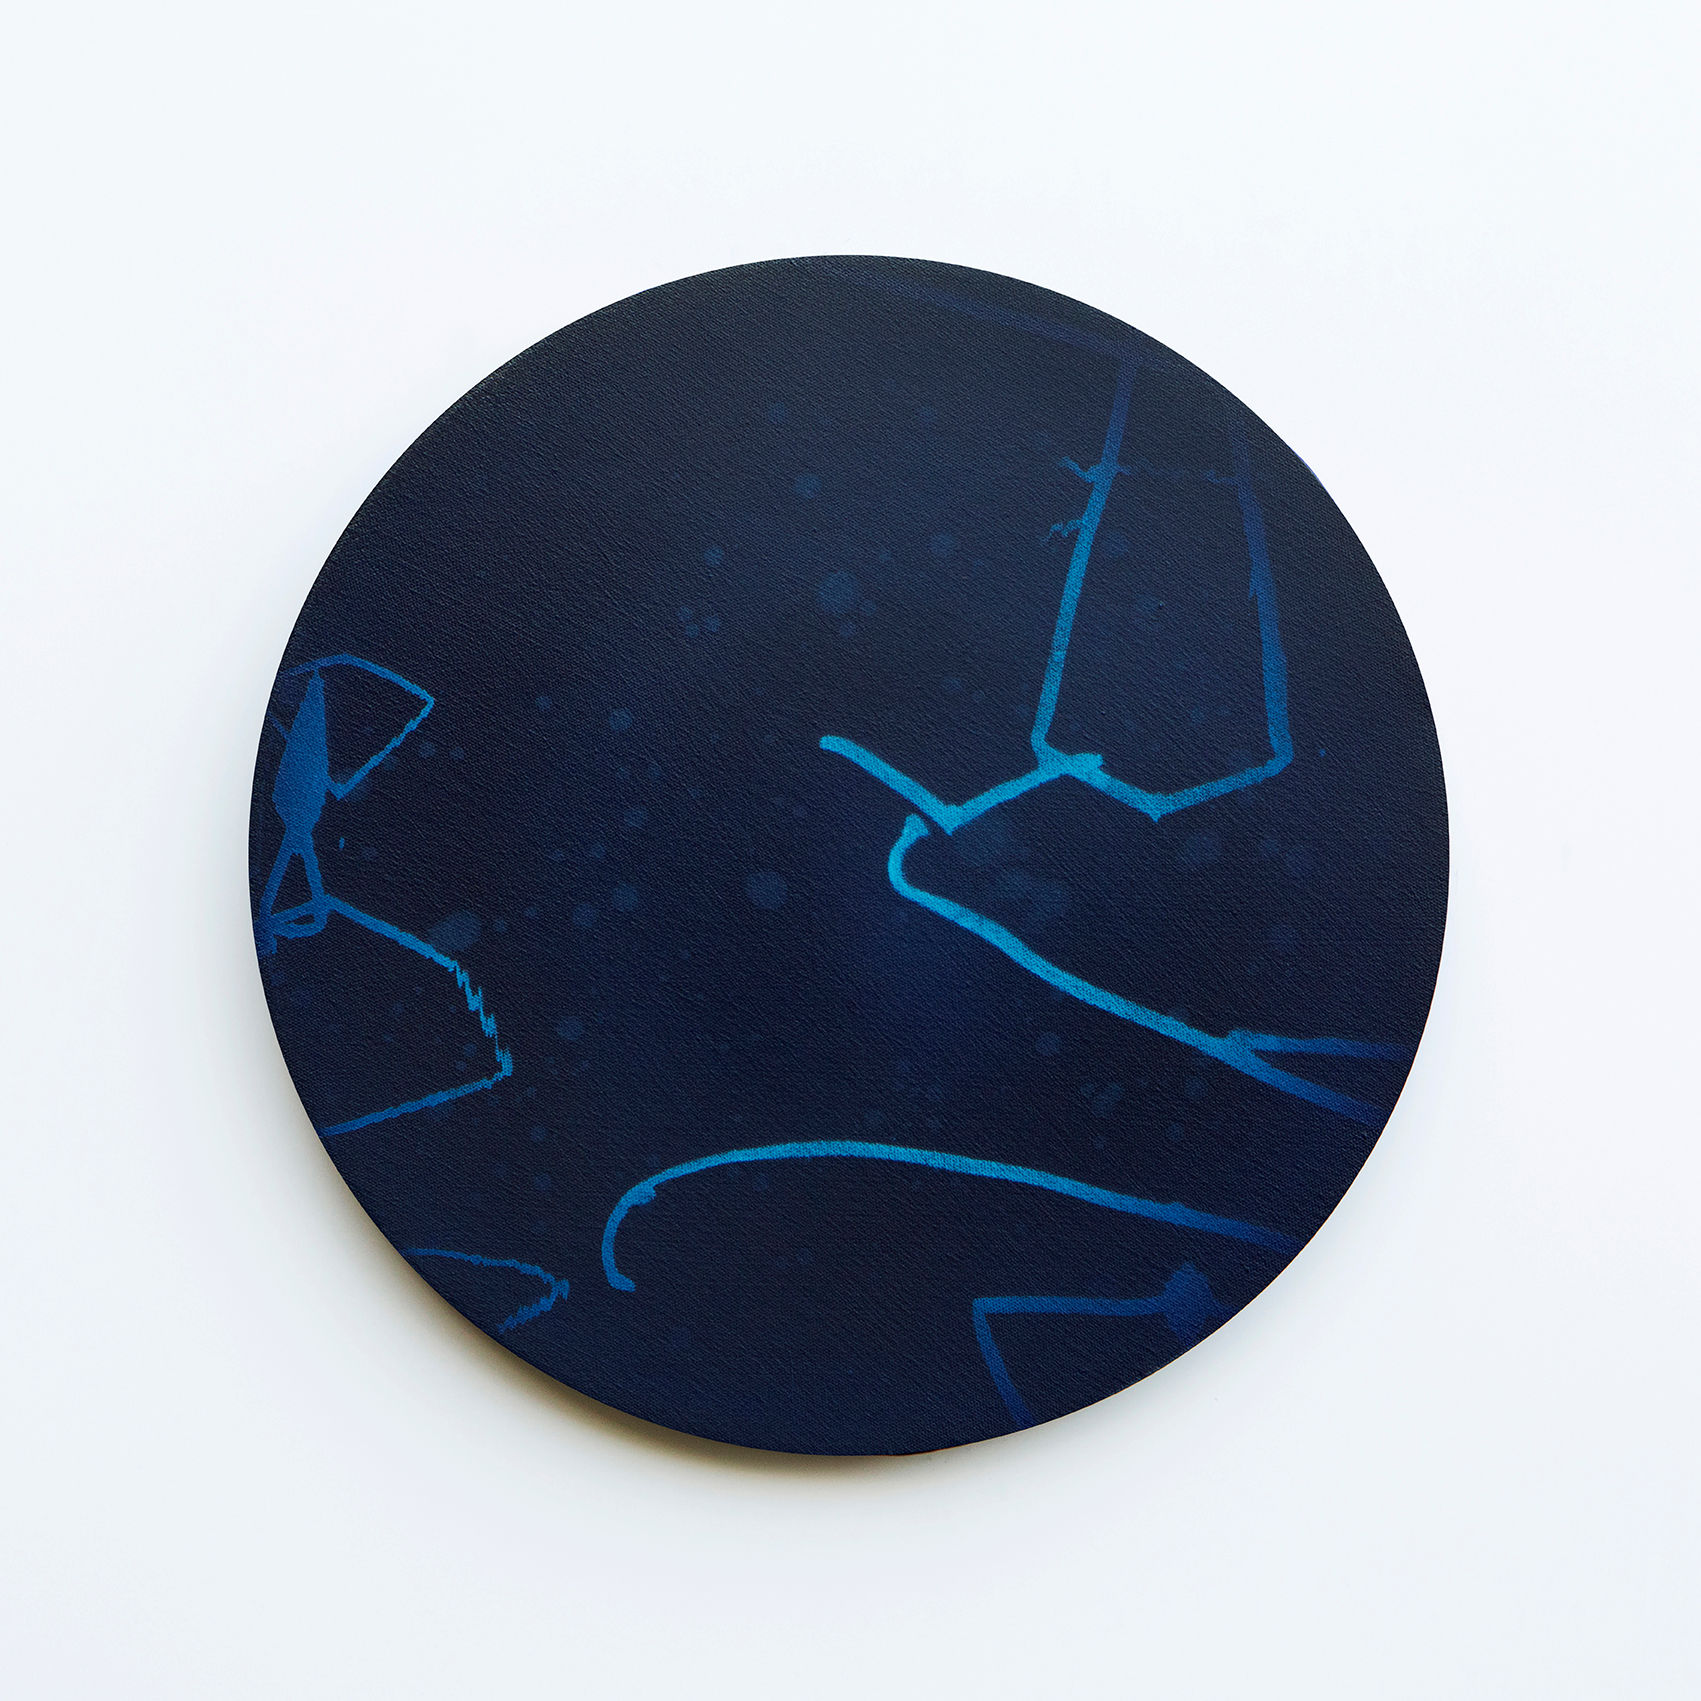 WATERSCAPE_내 안의 바깥 17, Diameter 40cm, Traditional pigment, water-print, water-drawing on canvas, 2018